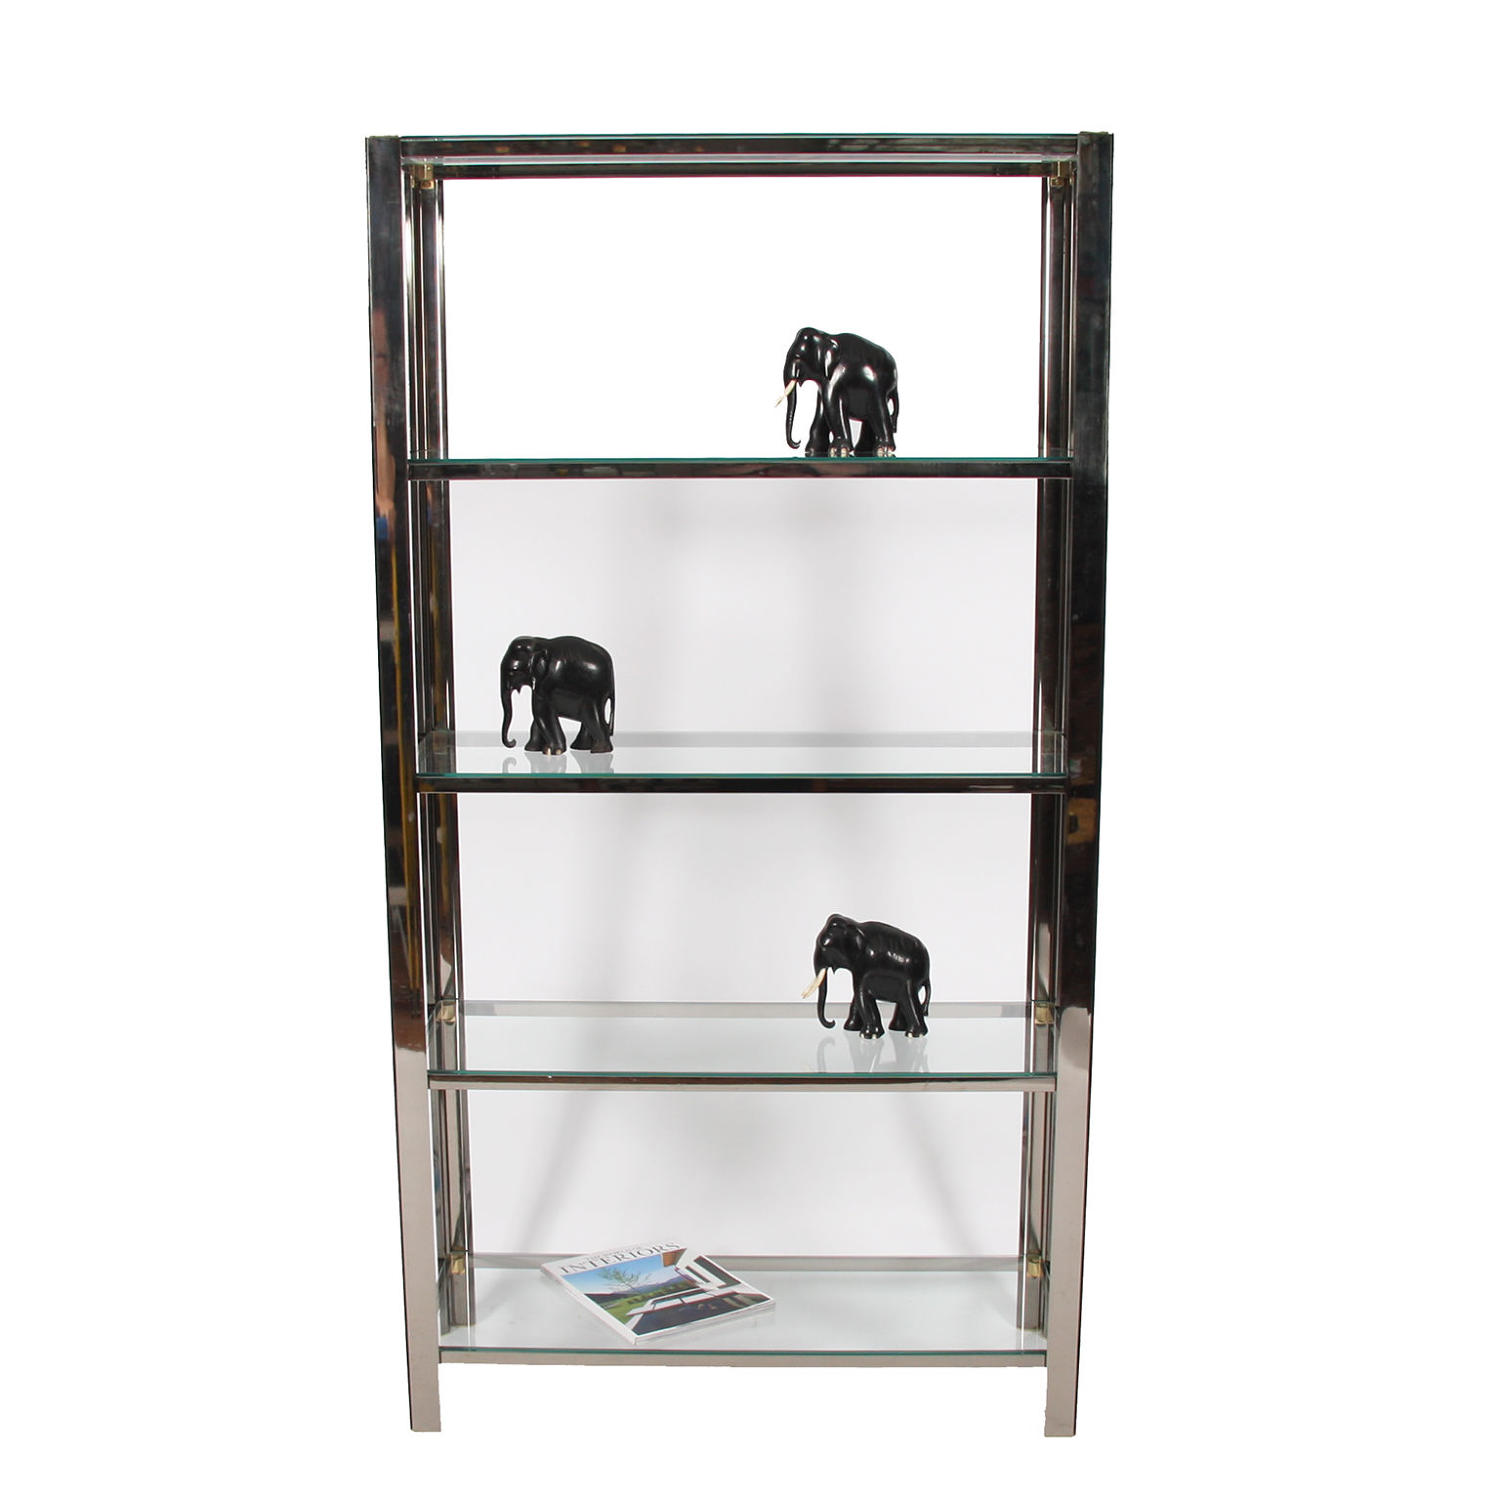 Chromed Metal Bookcase with Glass Shelves